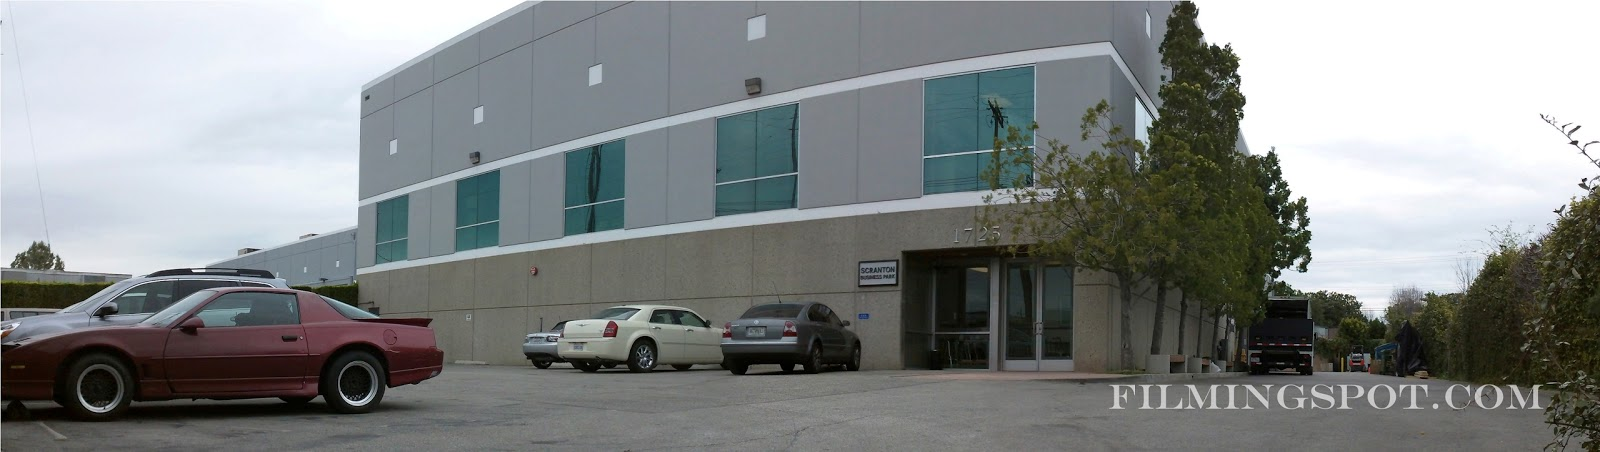 Where Is The Actual Dunder Mifflin Office Building